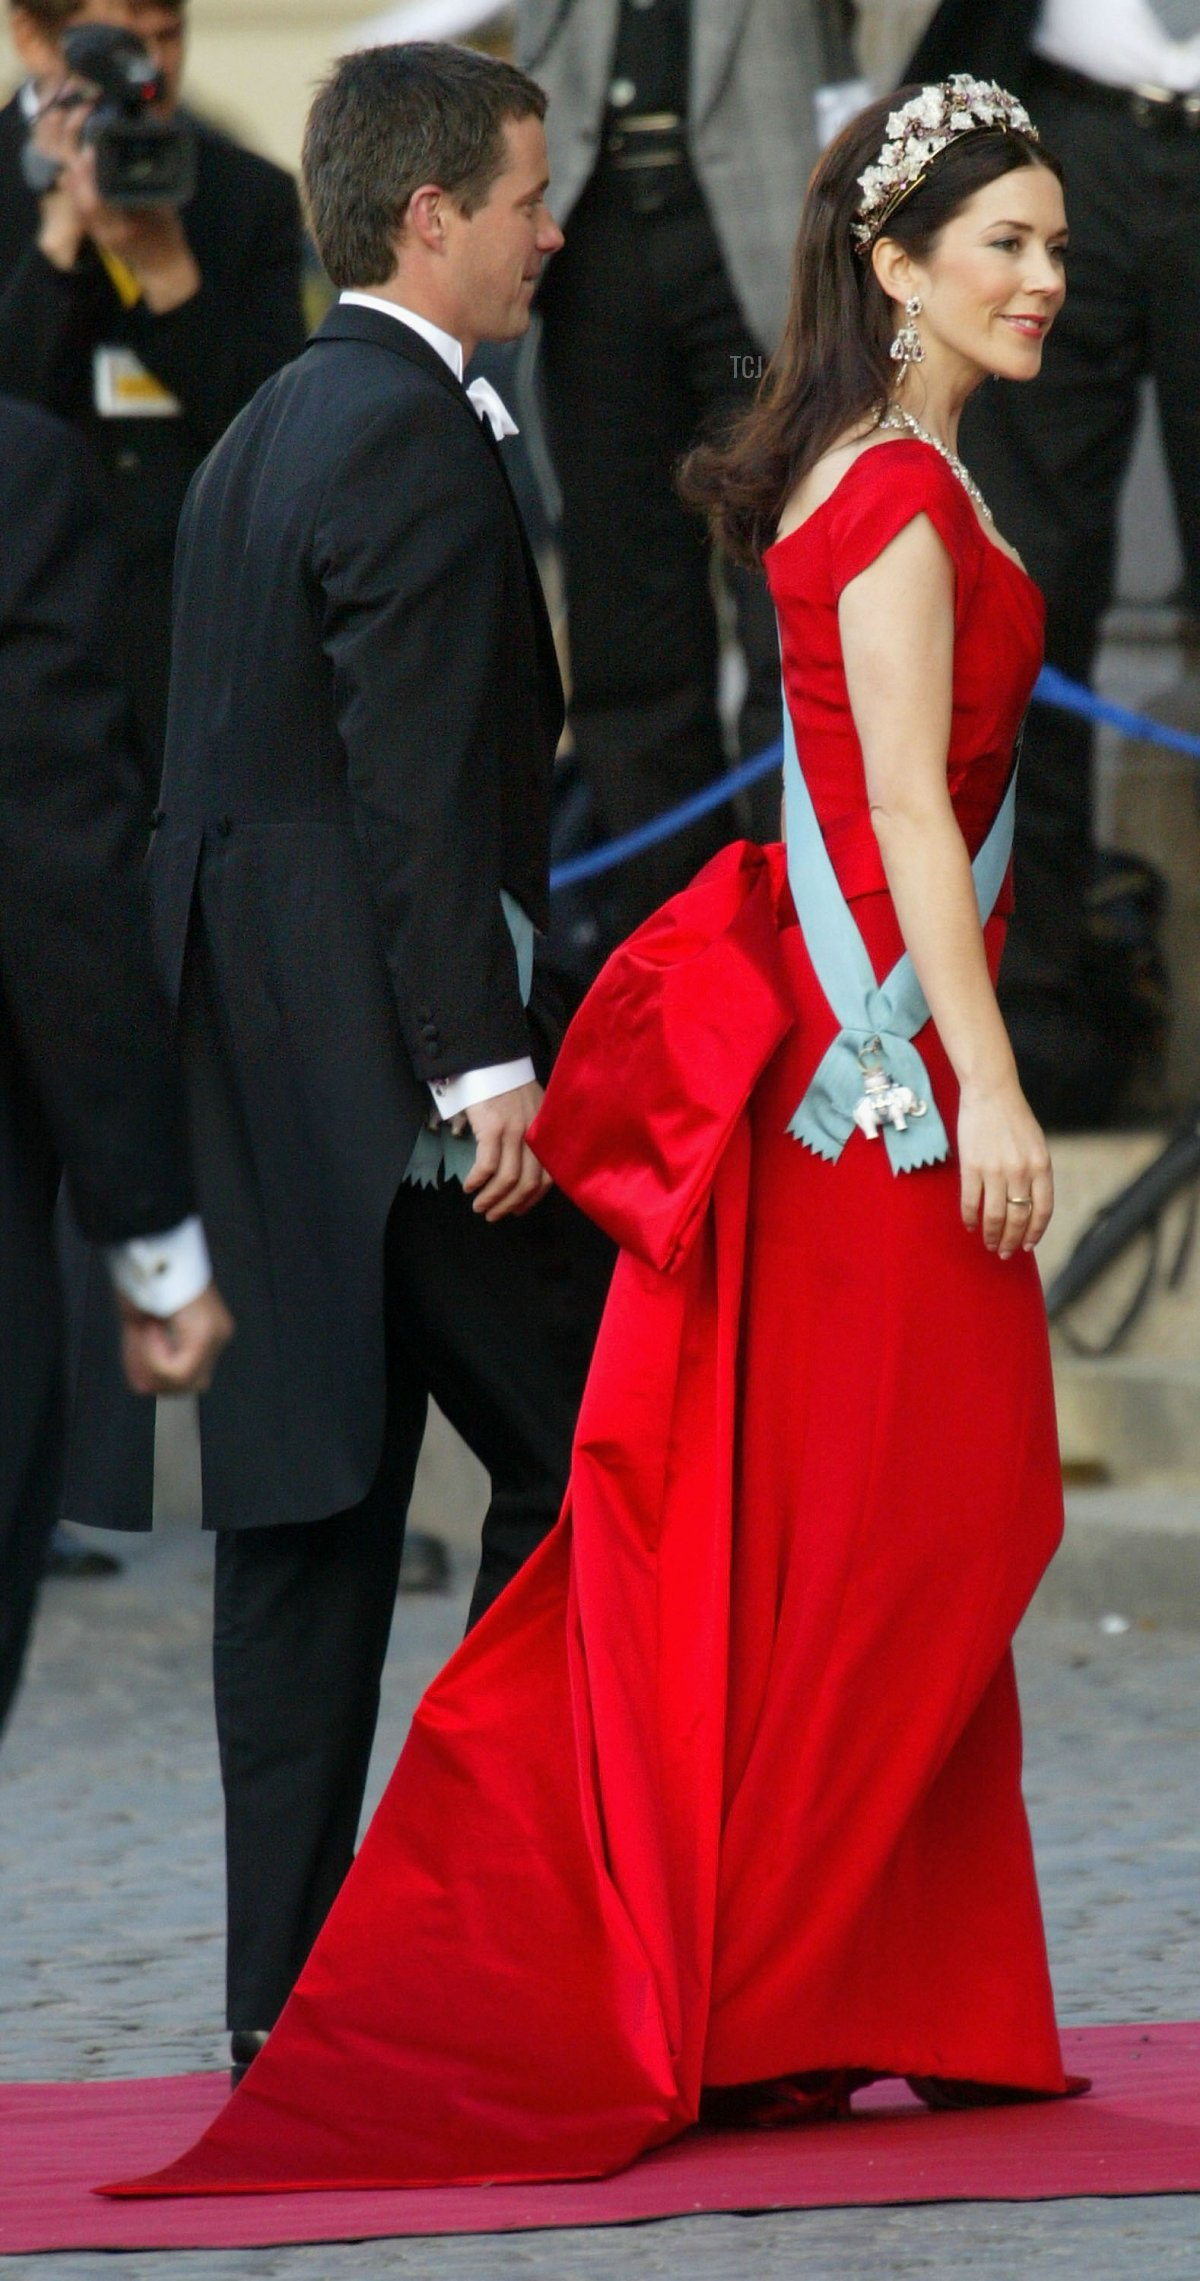 Crown Princess Mary of Denmark at her pre-wedding gala, May 2004